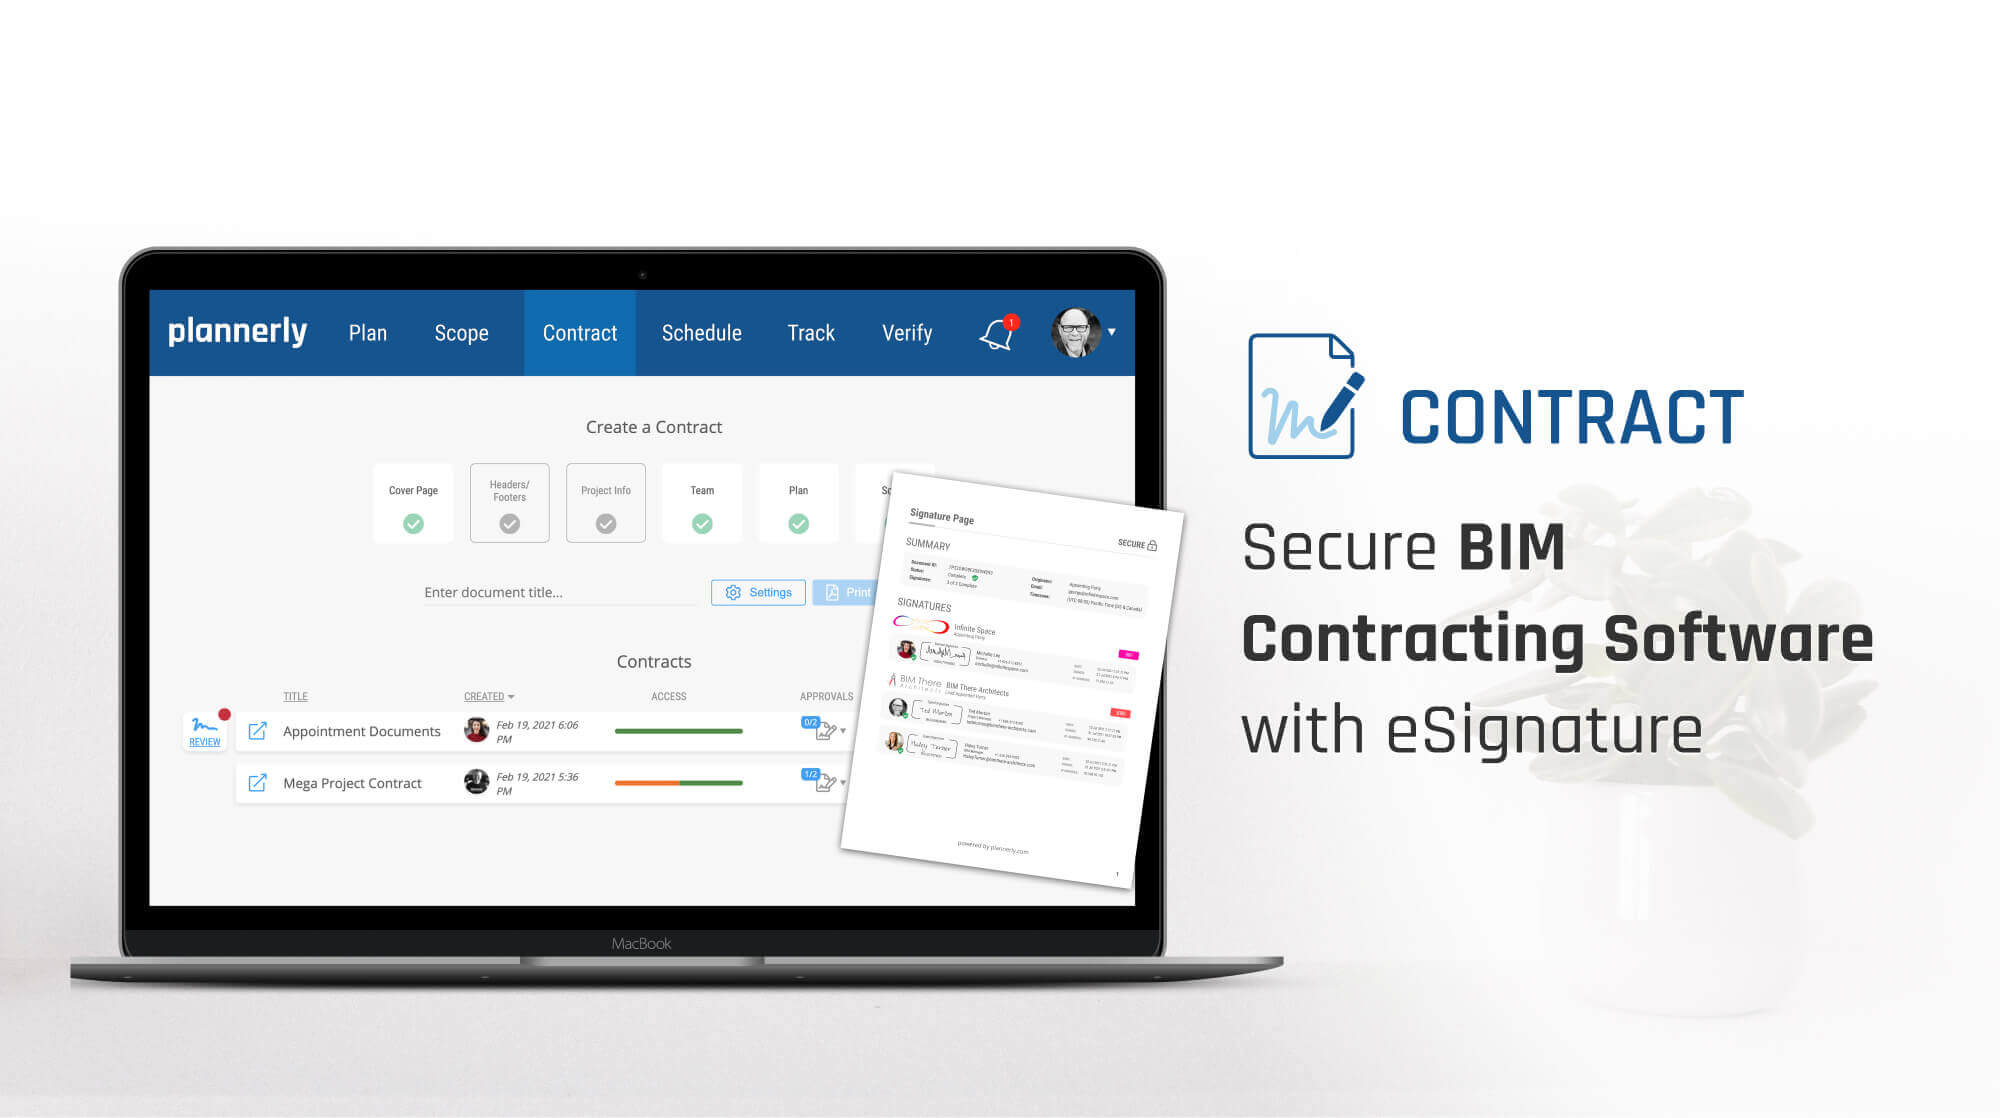 BIM Contracting Software for ISO 19650